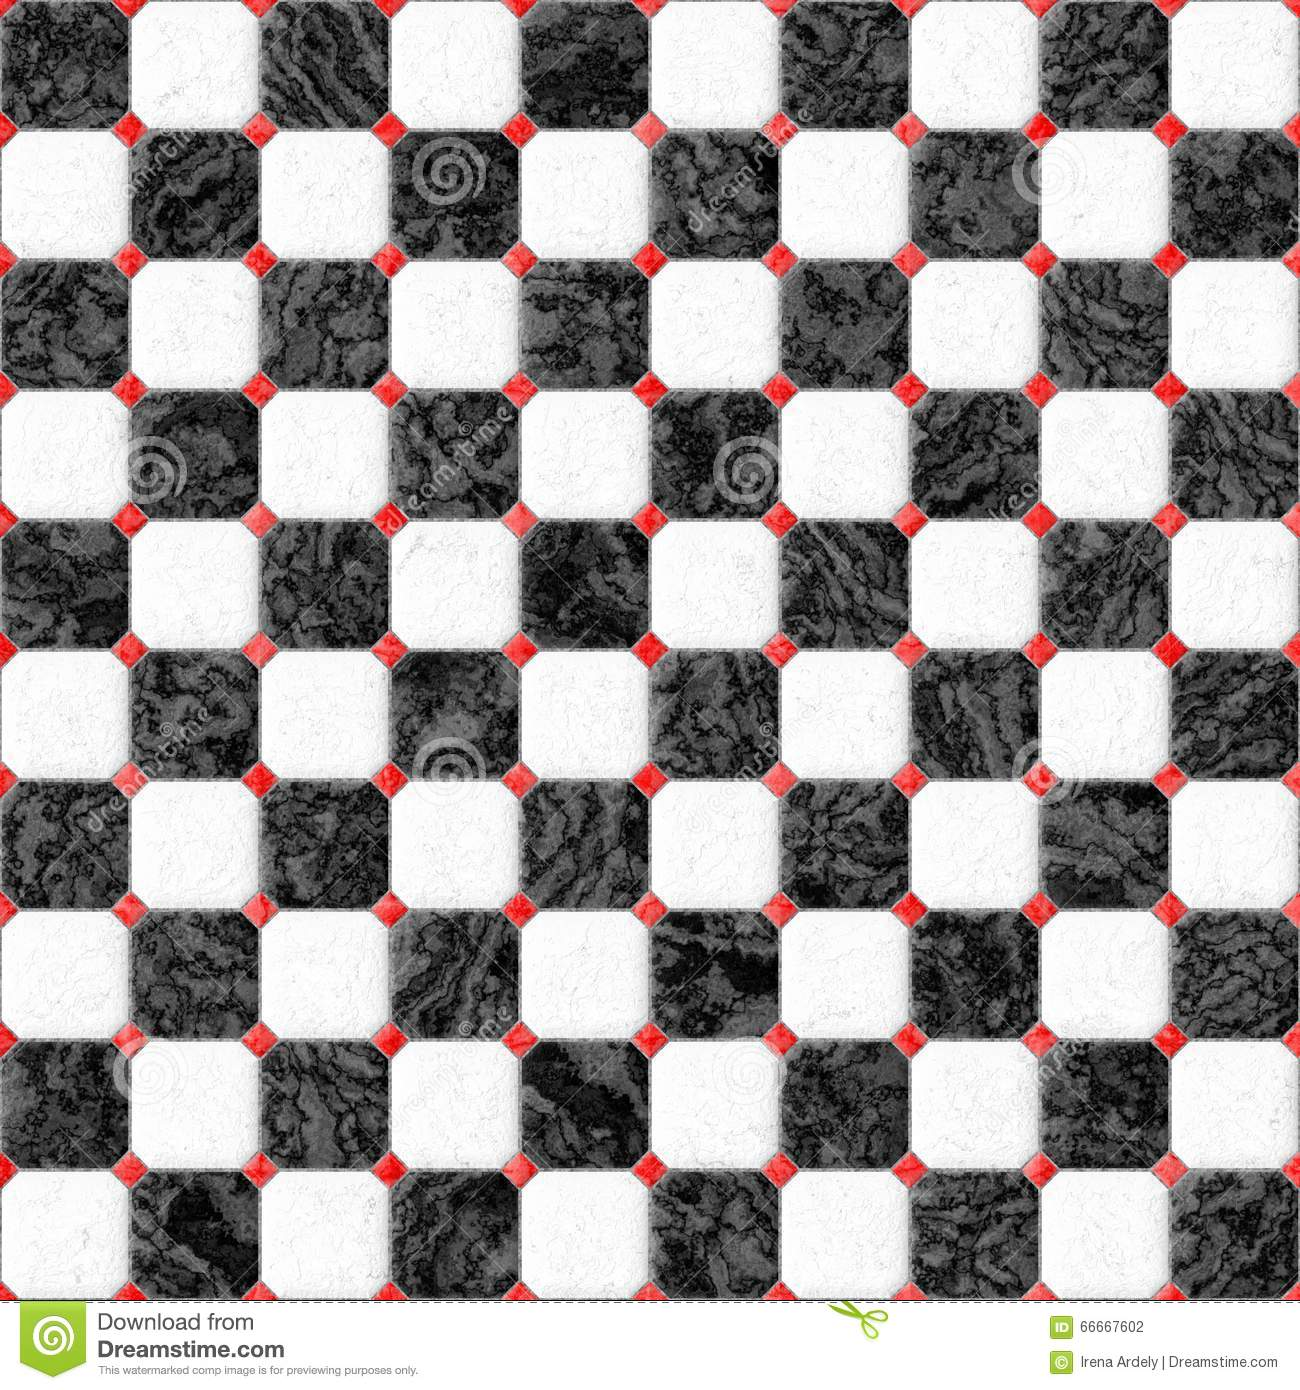 Awesome black and white tile floor texture images best inspiration black and white floor tile medium size of bathrooms floor tile dailygadgetfo Images